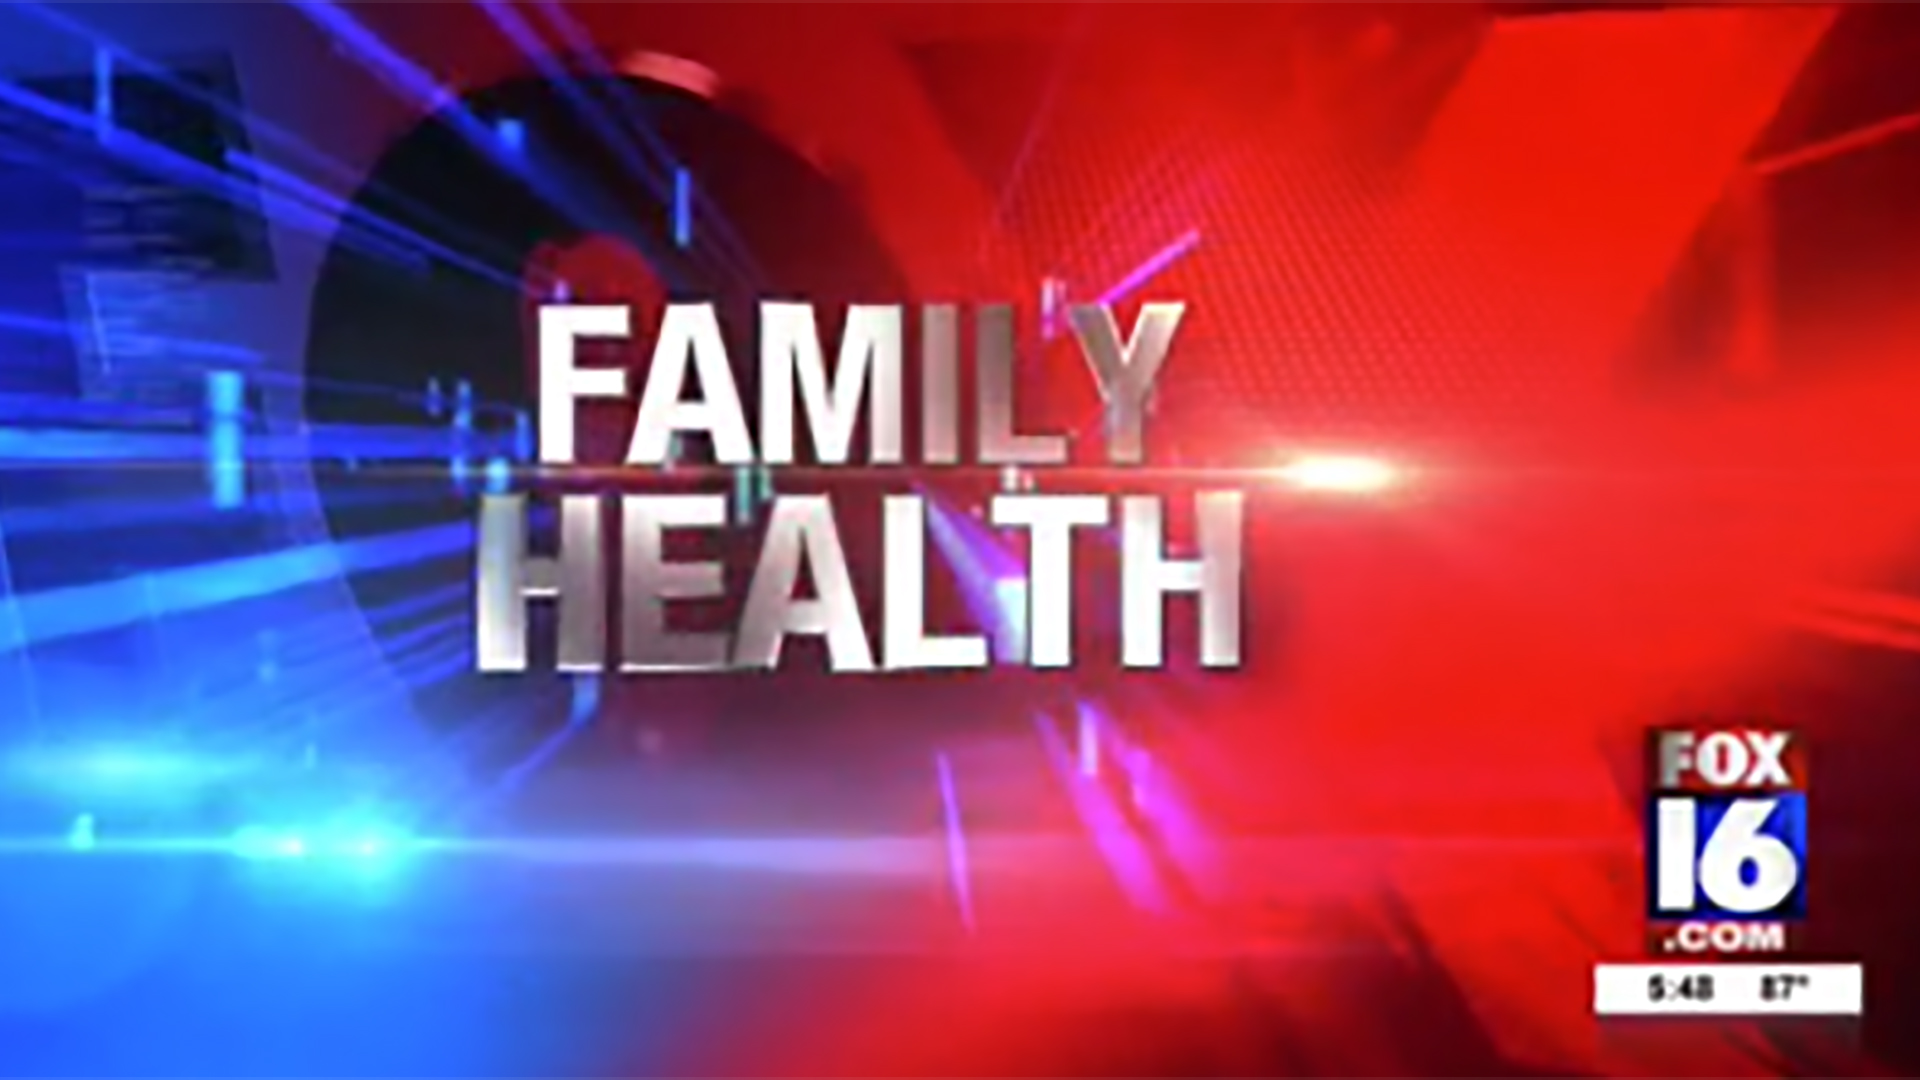 Family Health Checking For Colon Cancer Donna Terrell S Yoga Warriors Is Back Klrt Fox16 Com